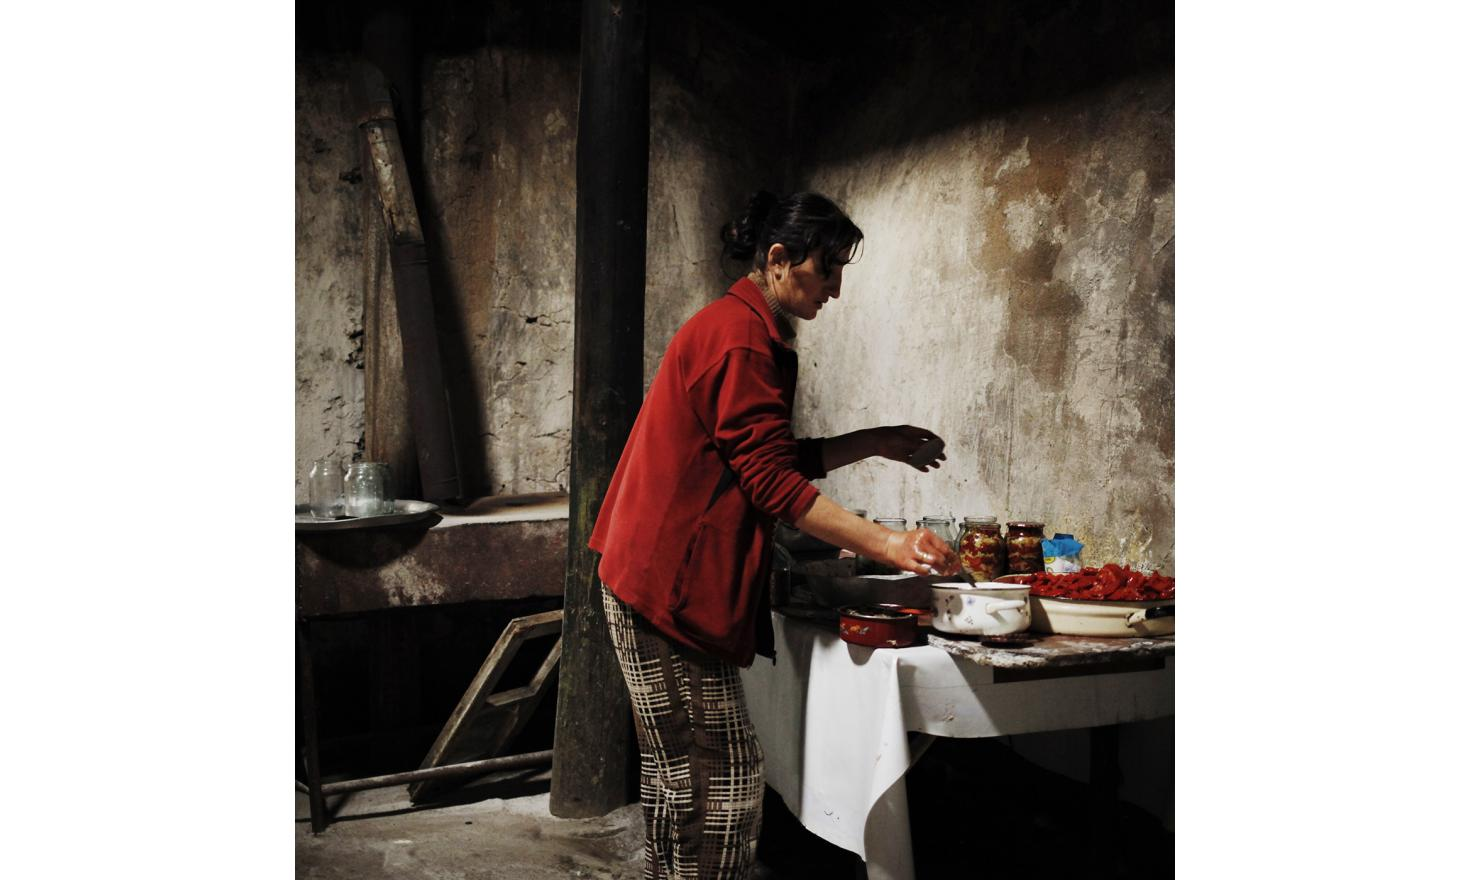 Anoush is preparing canned peppers in the outbuilding of the house.